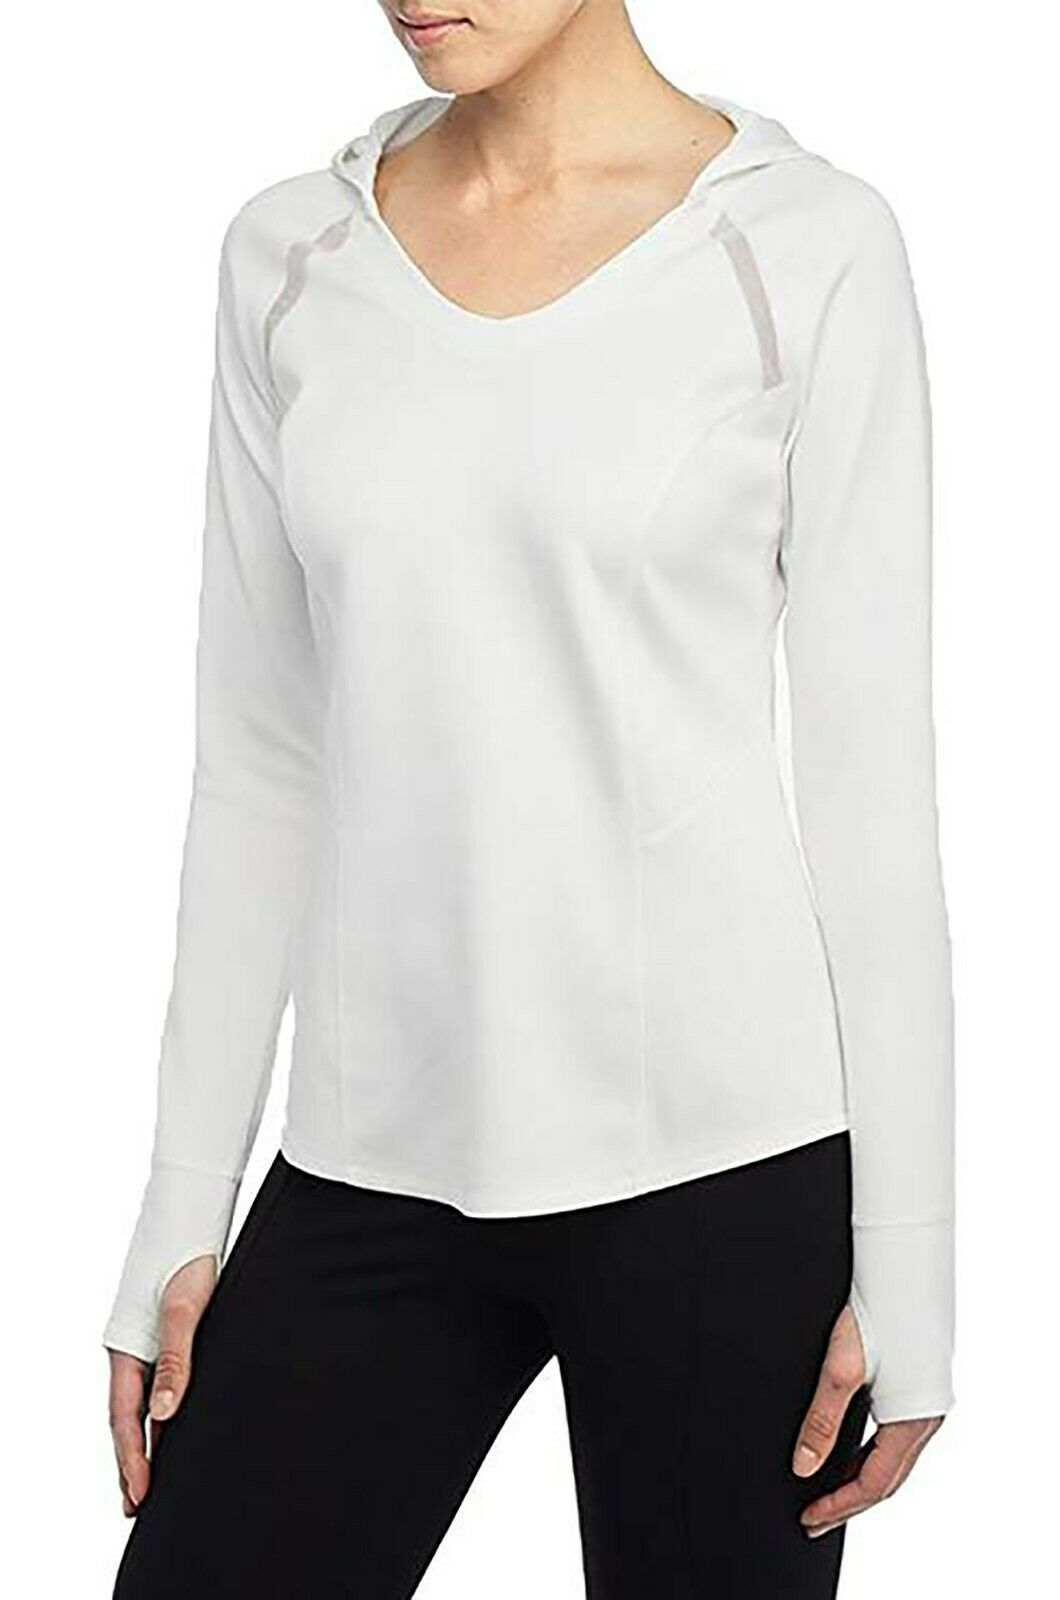 NYDJ Sport Womens White Long Sleeve Pullover Workout Stretch Hoodie Top Large NW